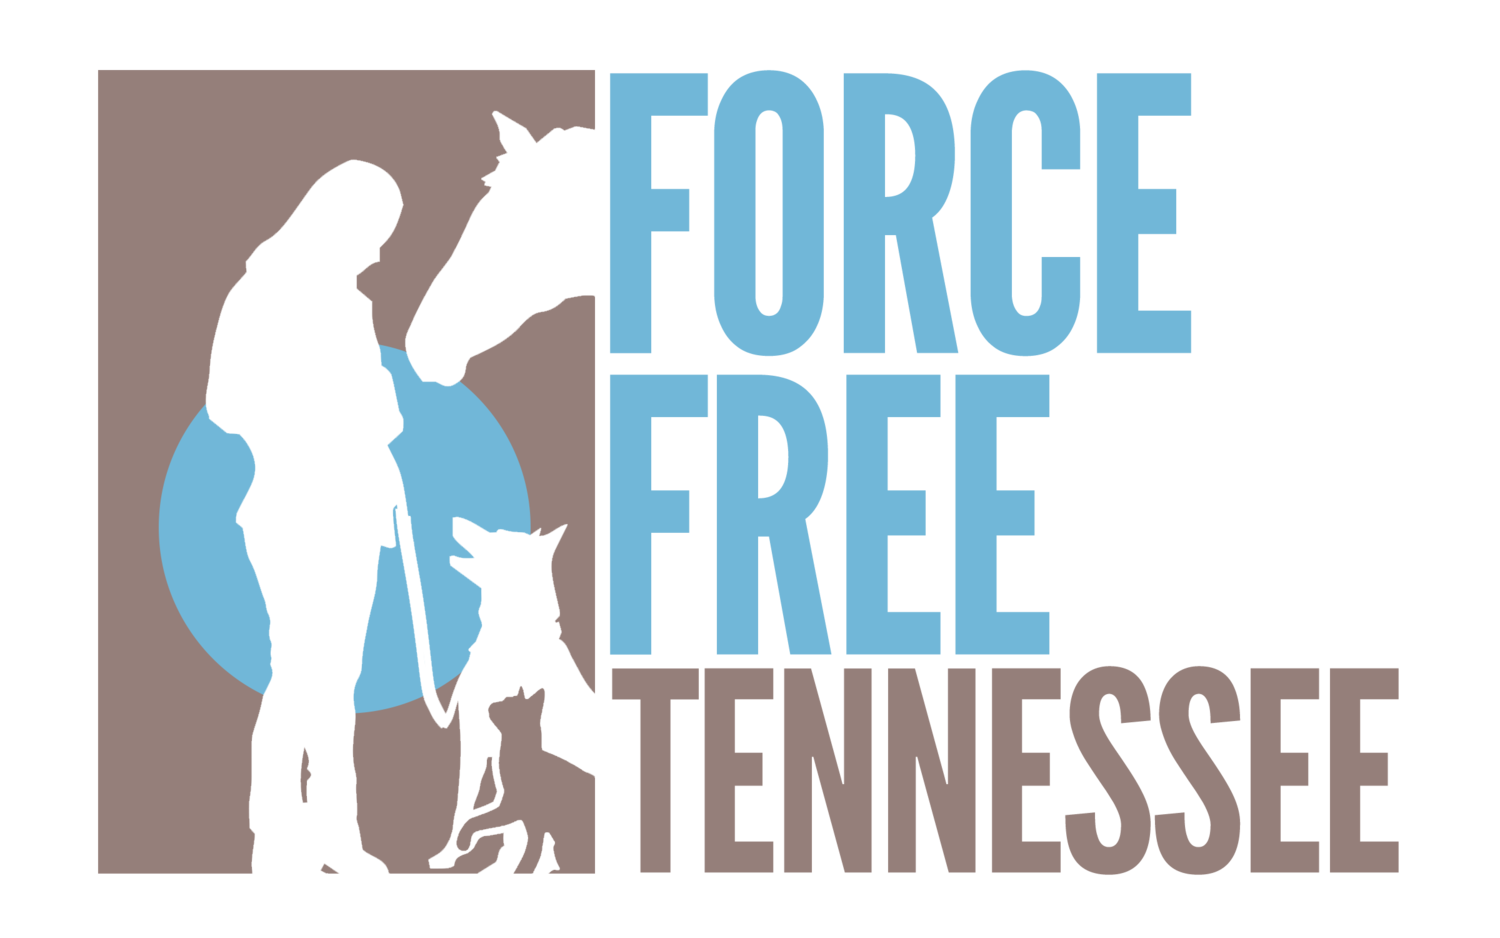 Force Free Tennessee